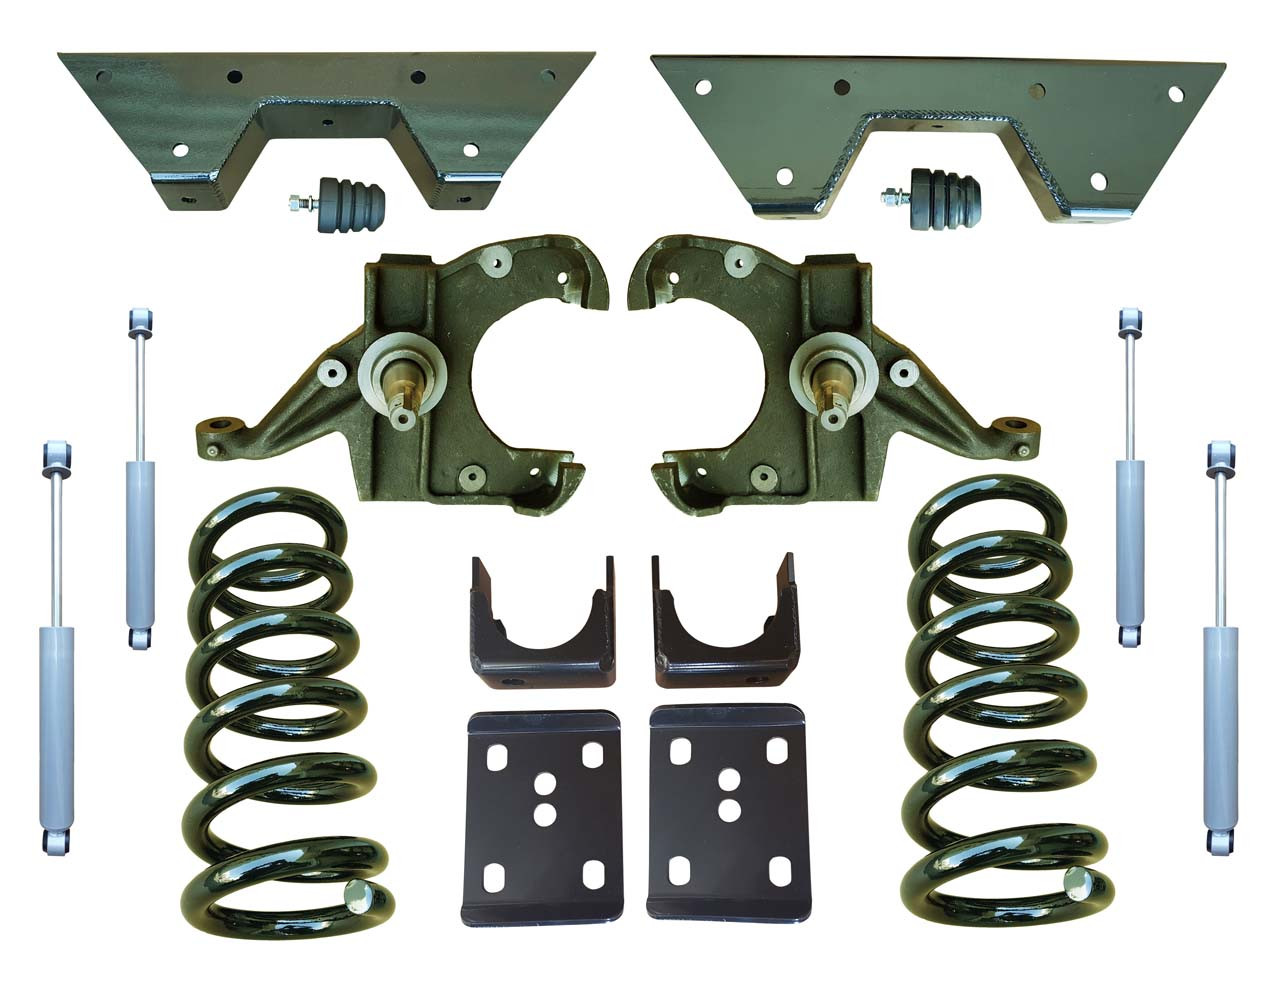 Complete 6in Lowering Spindle Drop Kit for Chevy GMC C10 C15 Trucks